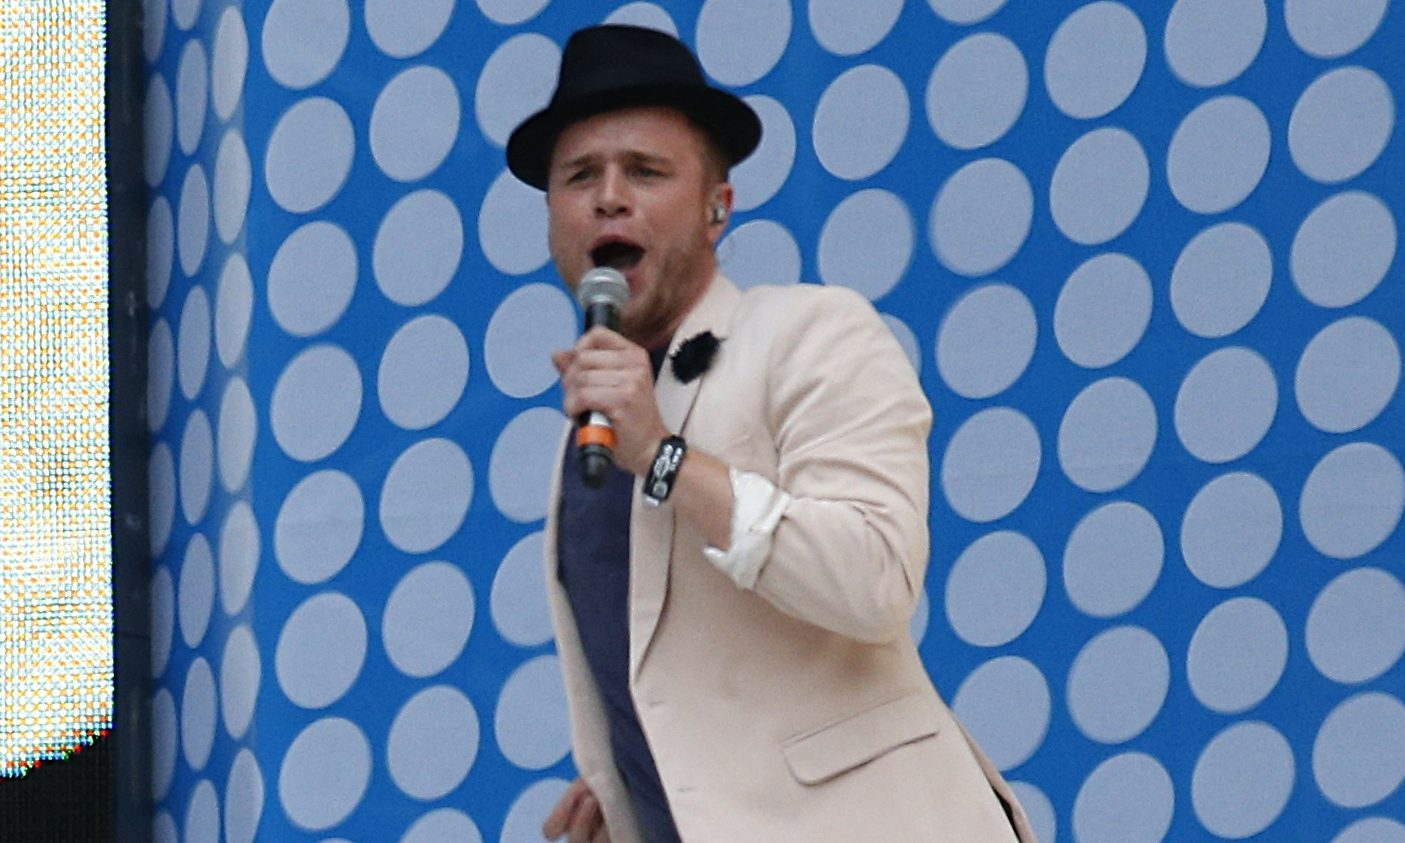 Olly might be advised to wear a hat when he visits Dundee this week.